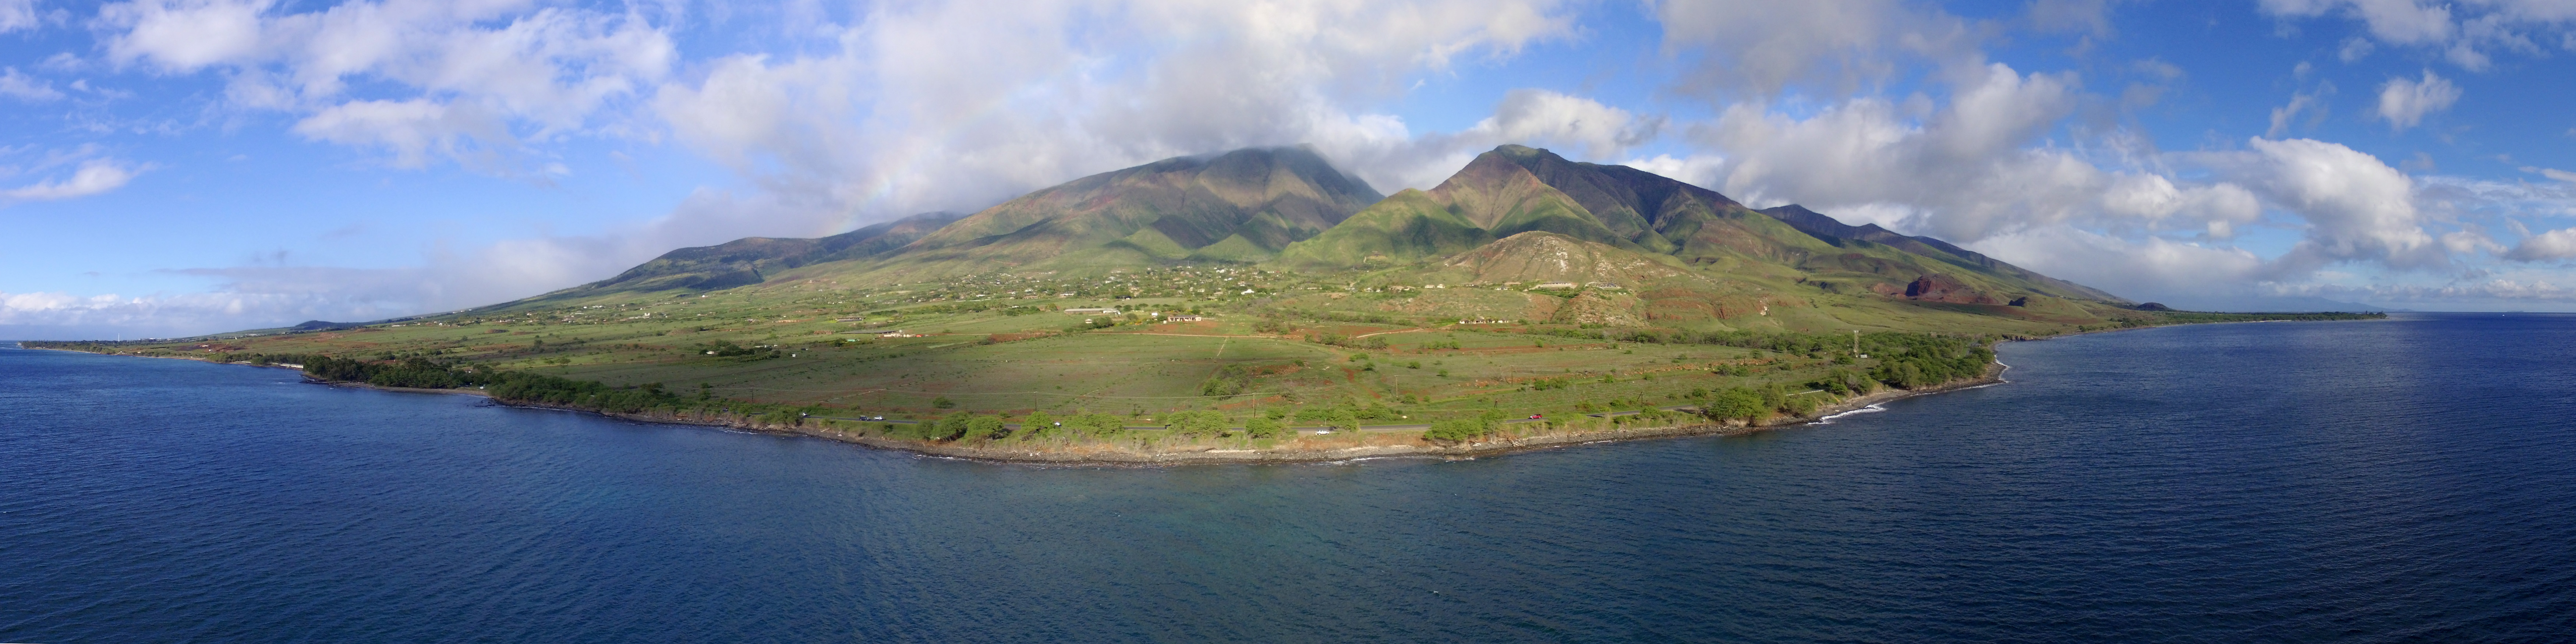 A panorama view of the lower west side of Maui